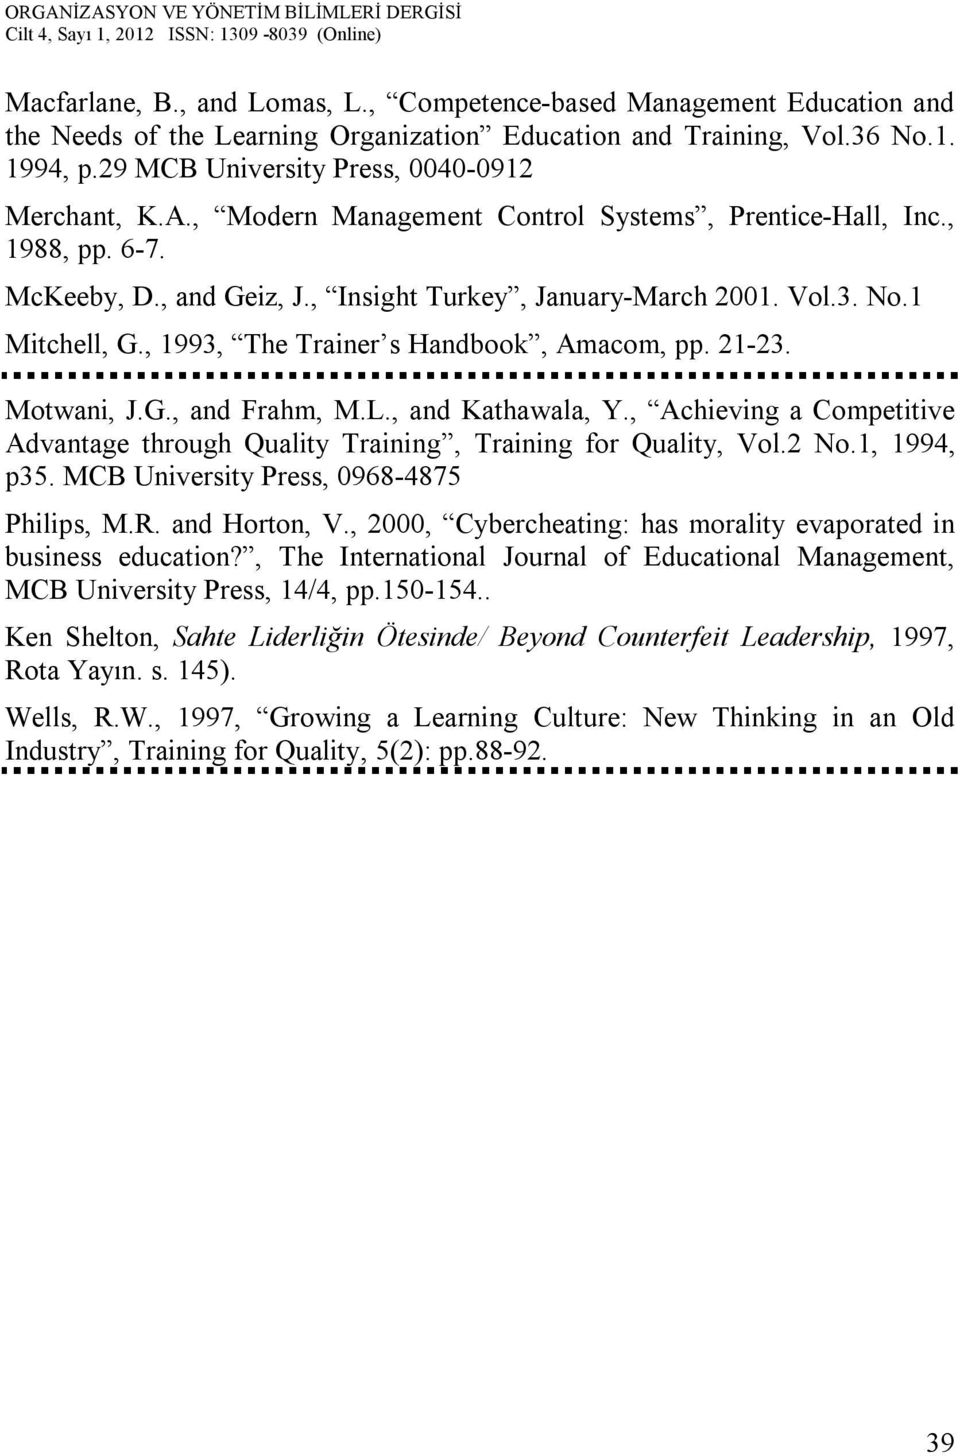 1 Mitchell, G., 1993, The Trainer s Handbook, Amacom, pp. 21-23. Motwani, J.G., and Frahm, M.L., and Kathawala, Y.